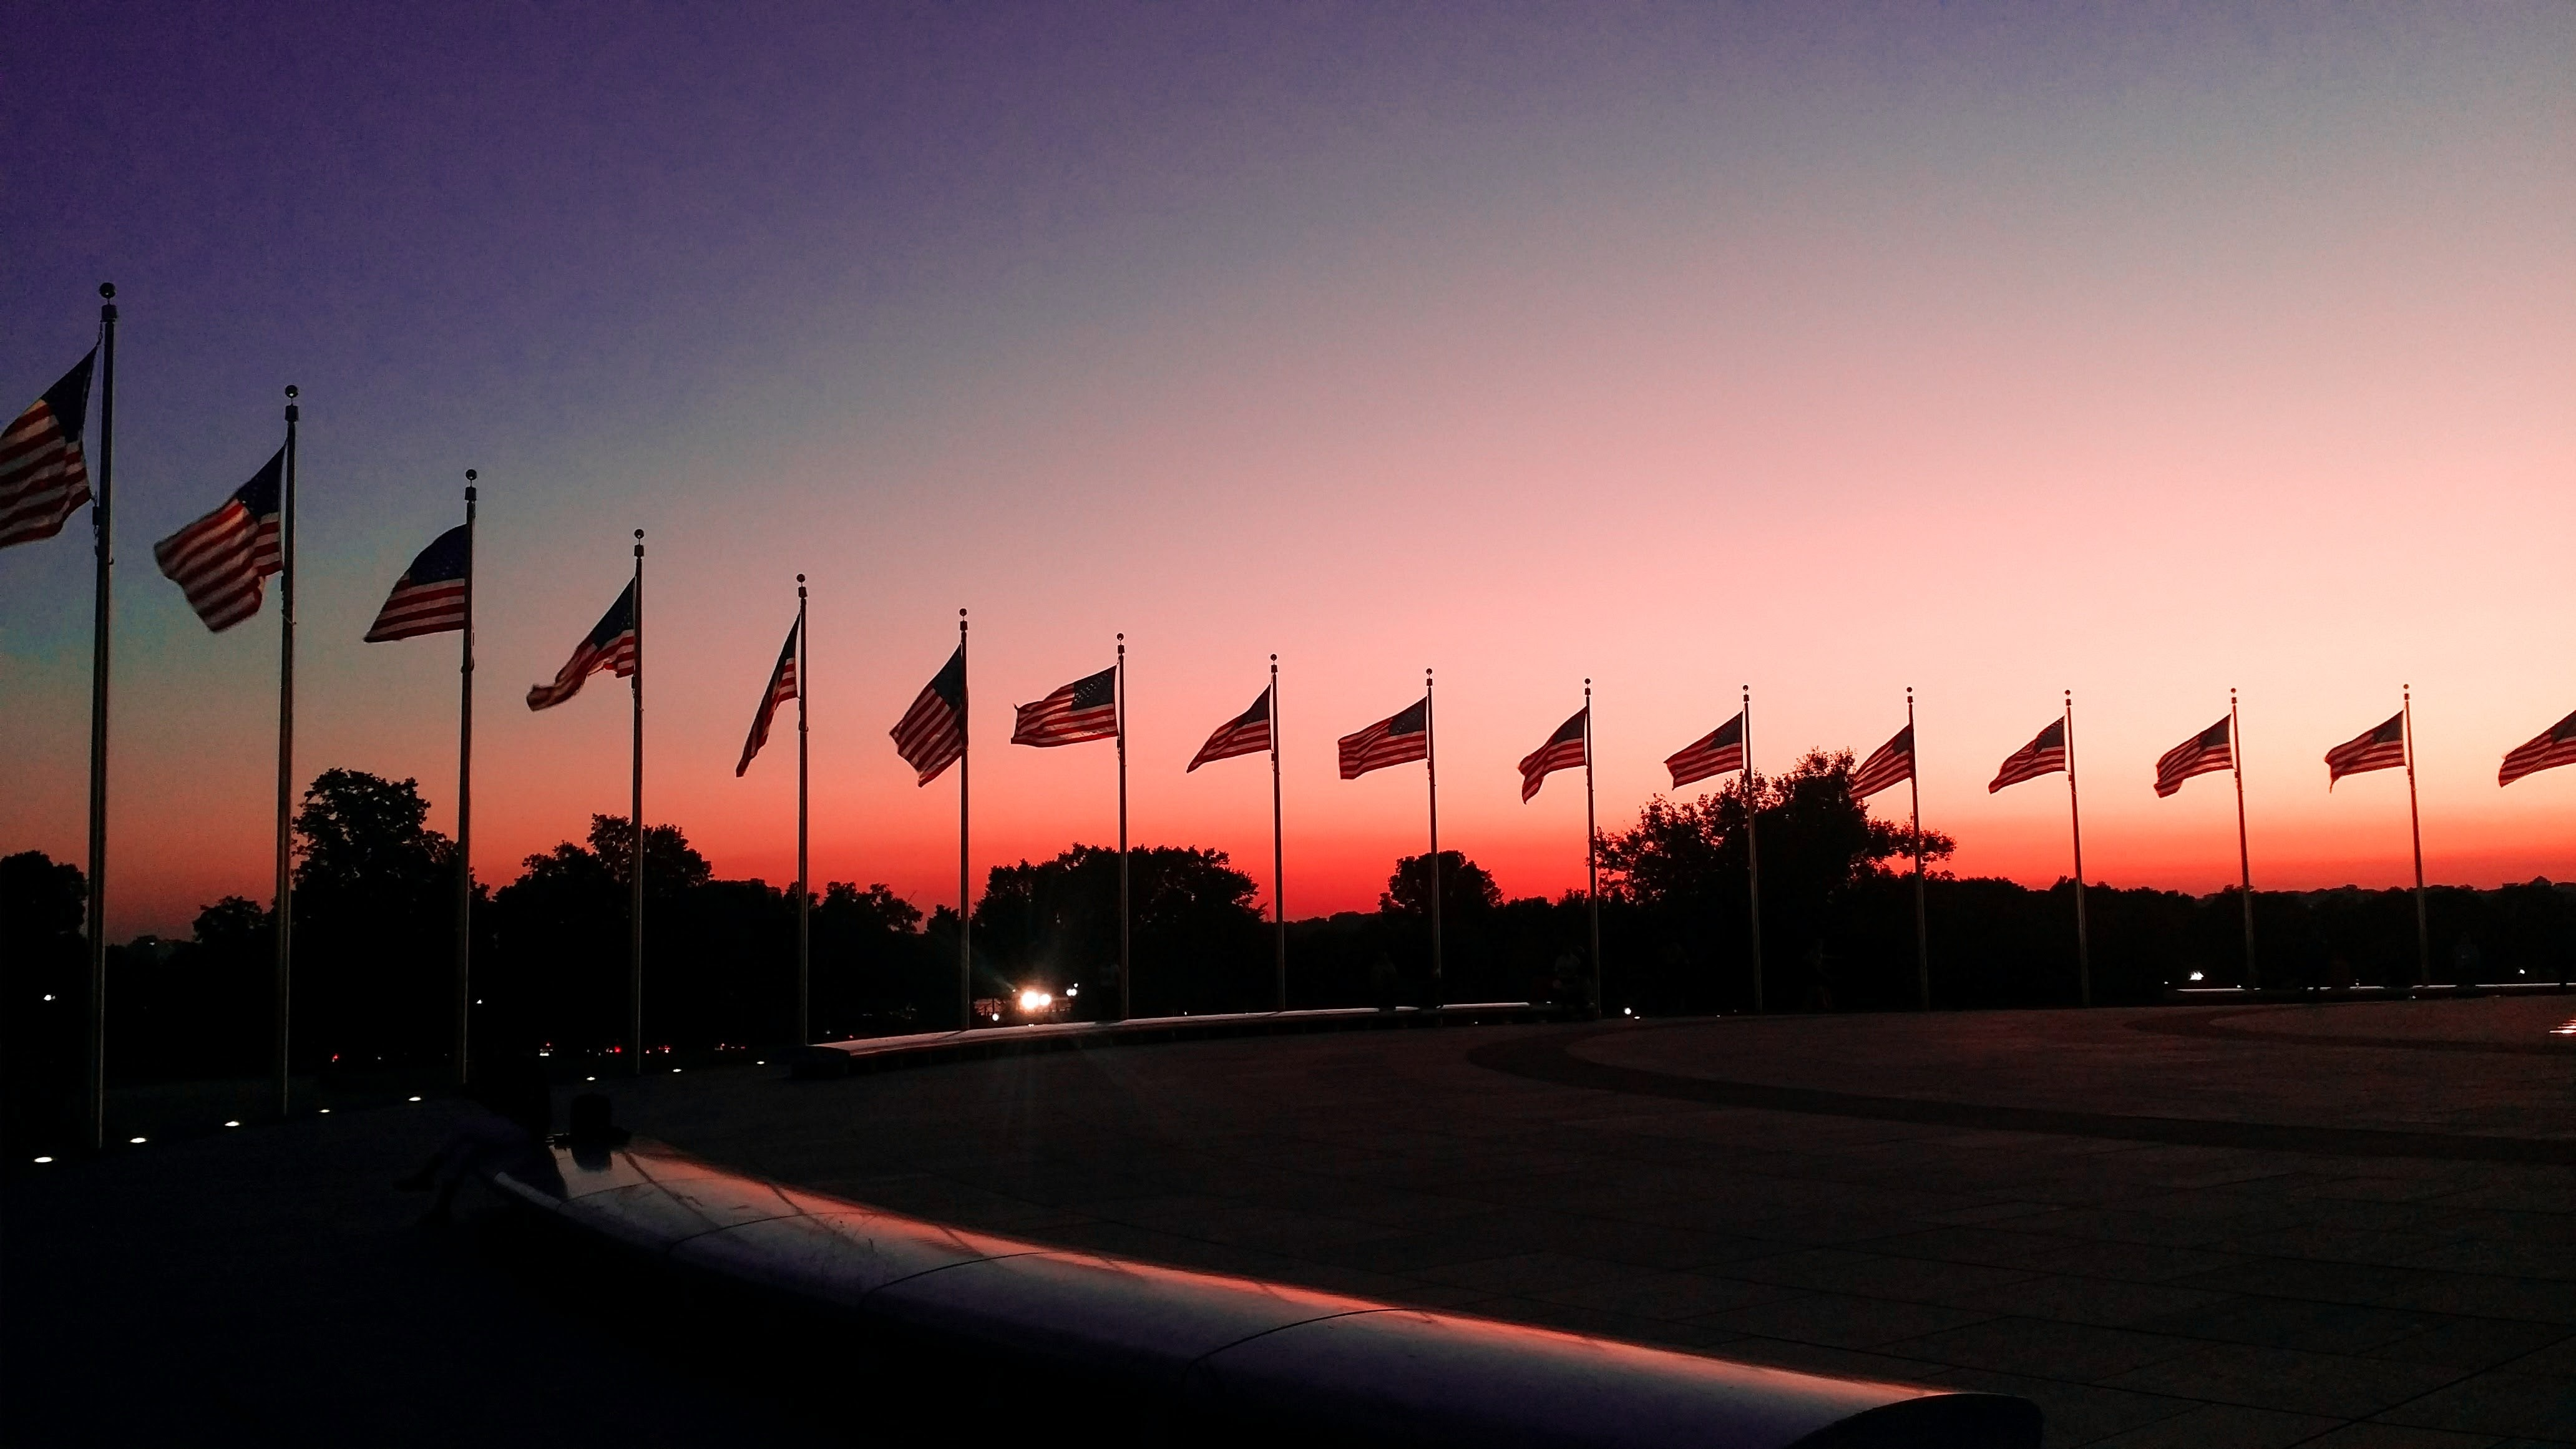 silhouette of flags